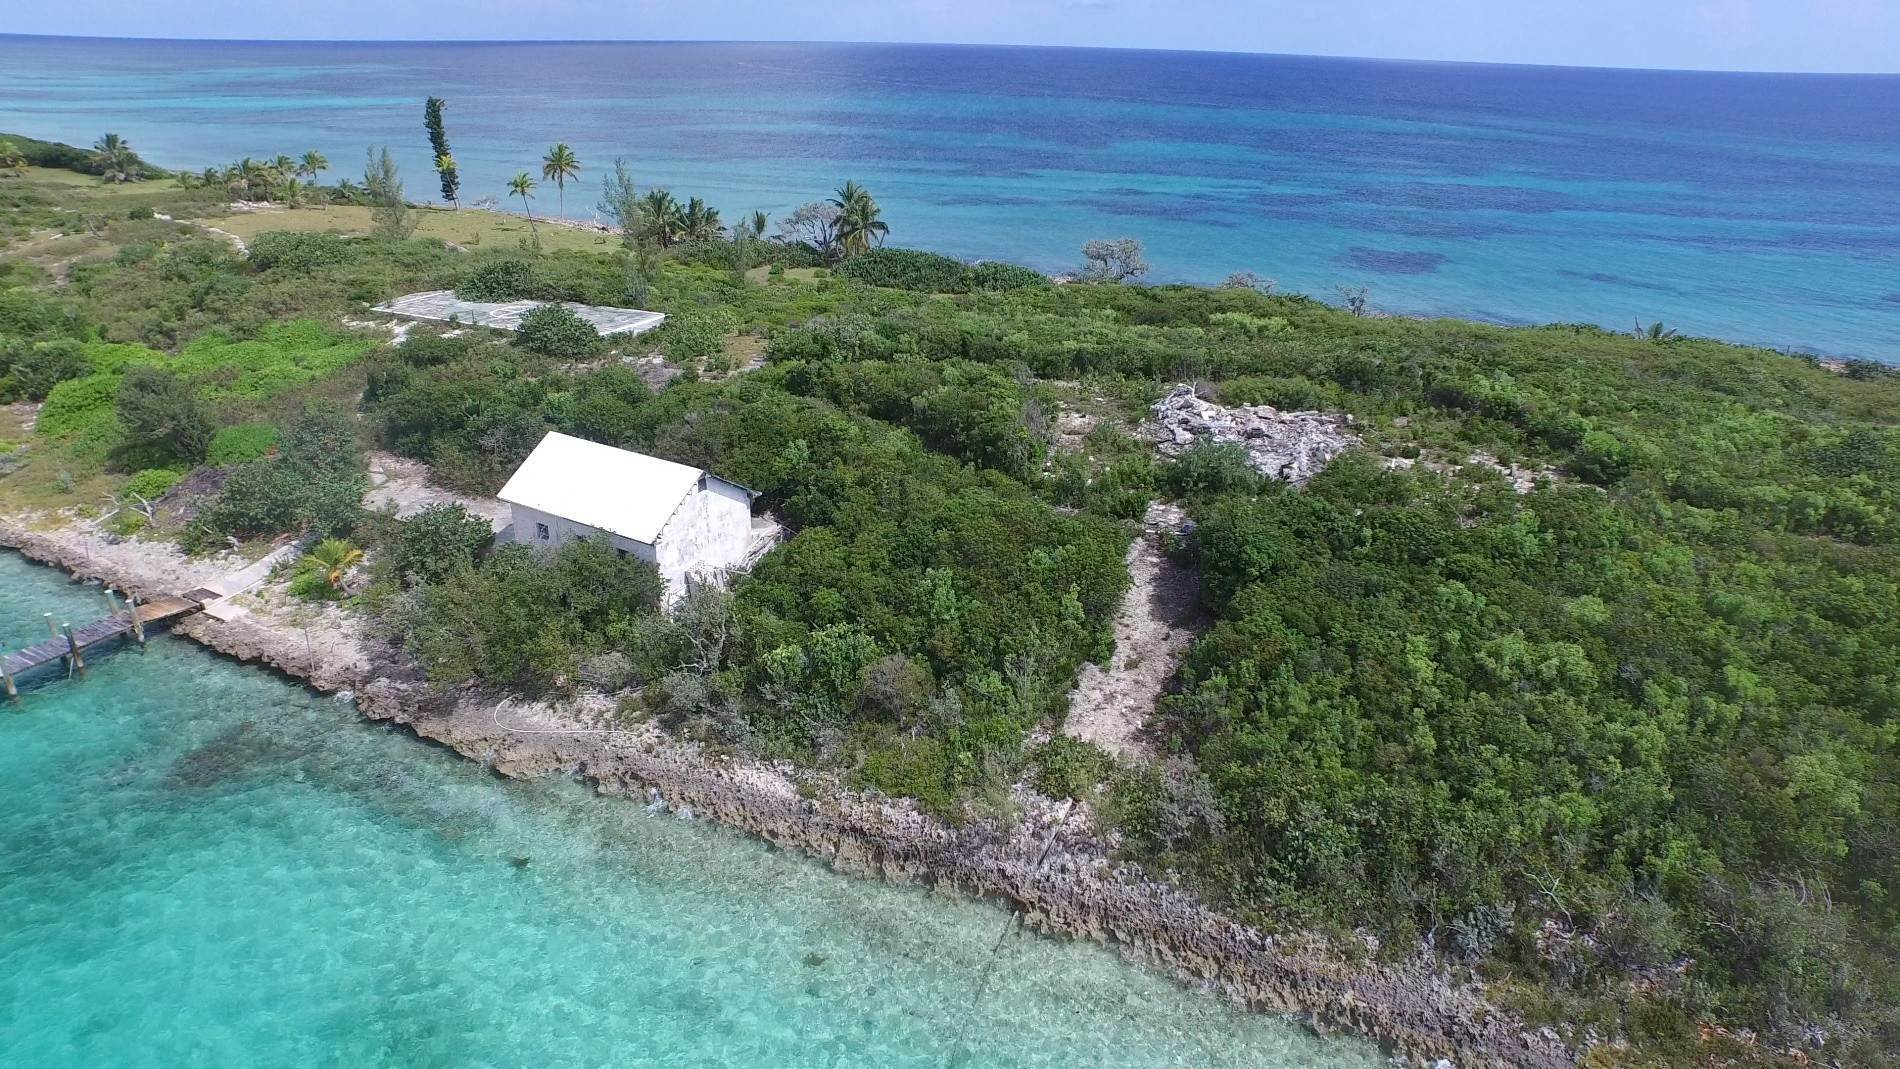 13. Private Islands for Sale at Pierre Island, A Perfect Private Retreat Island Near Harbour Island - MLS 40806 Harbour Island, Eleuthera, Bahamas